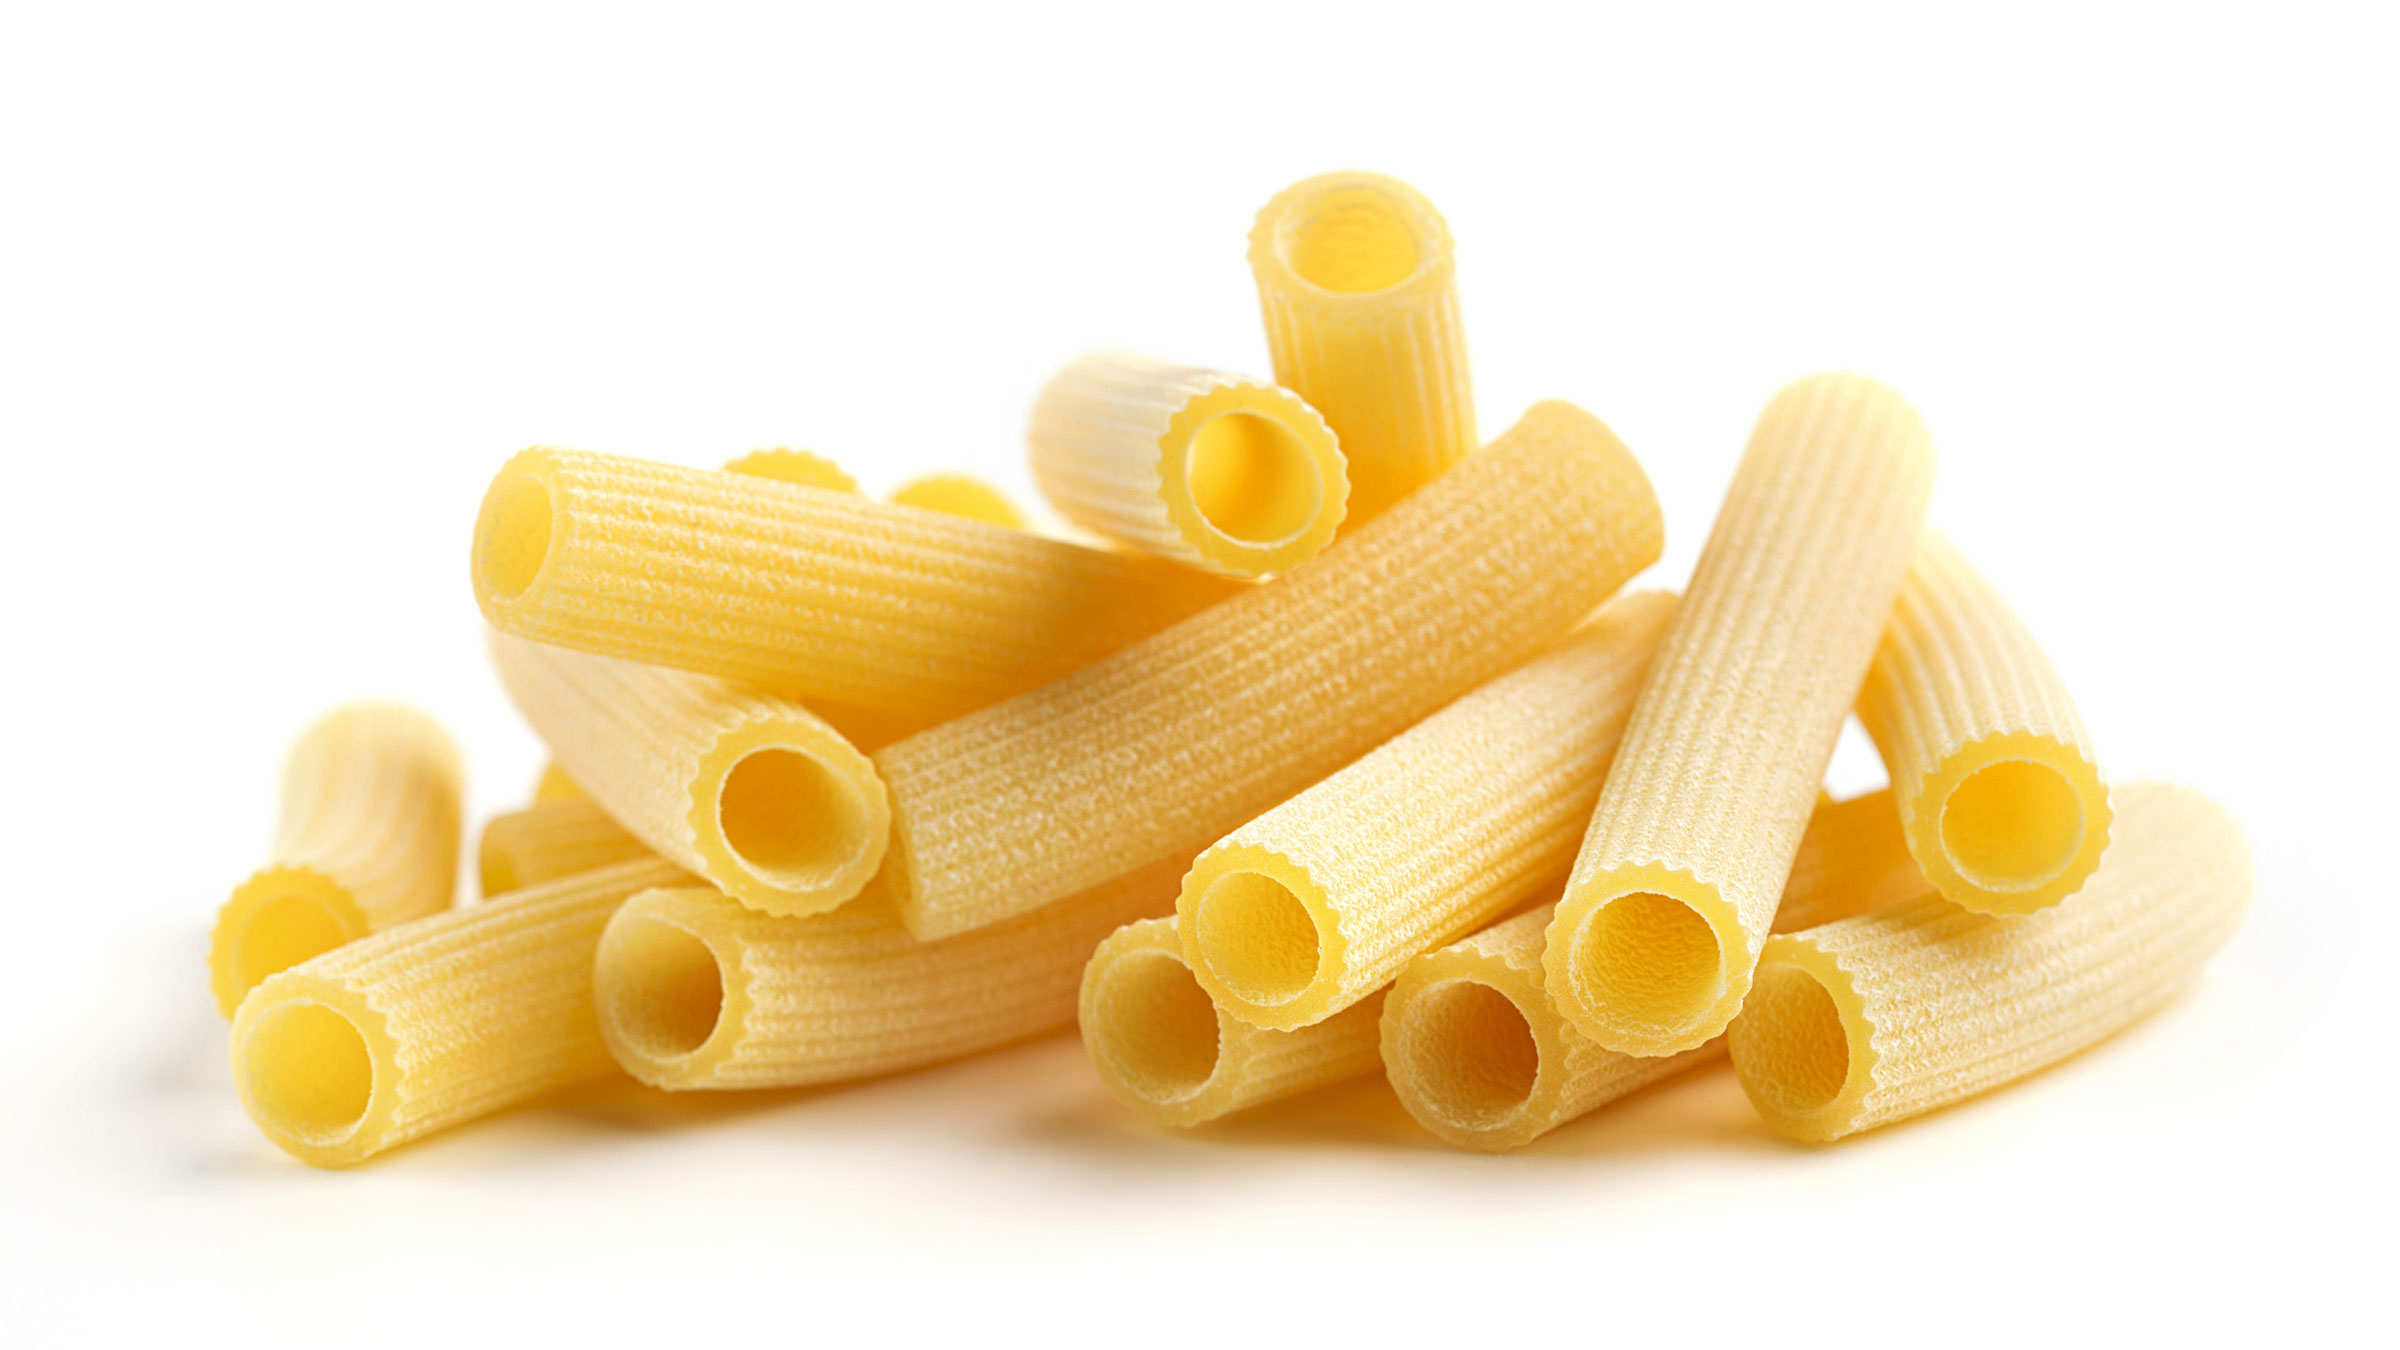 Pasta (penne)